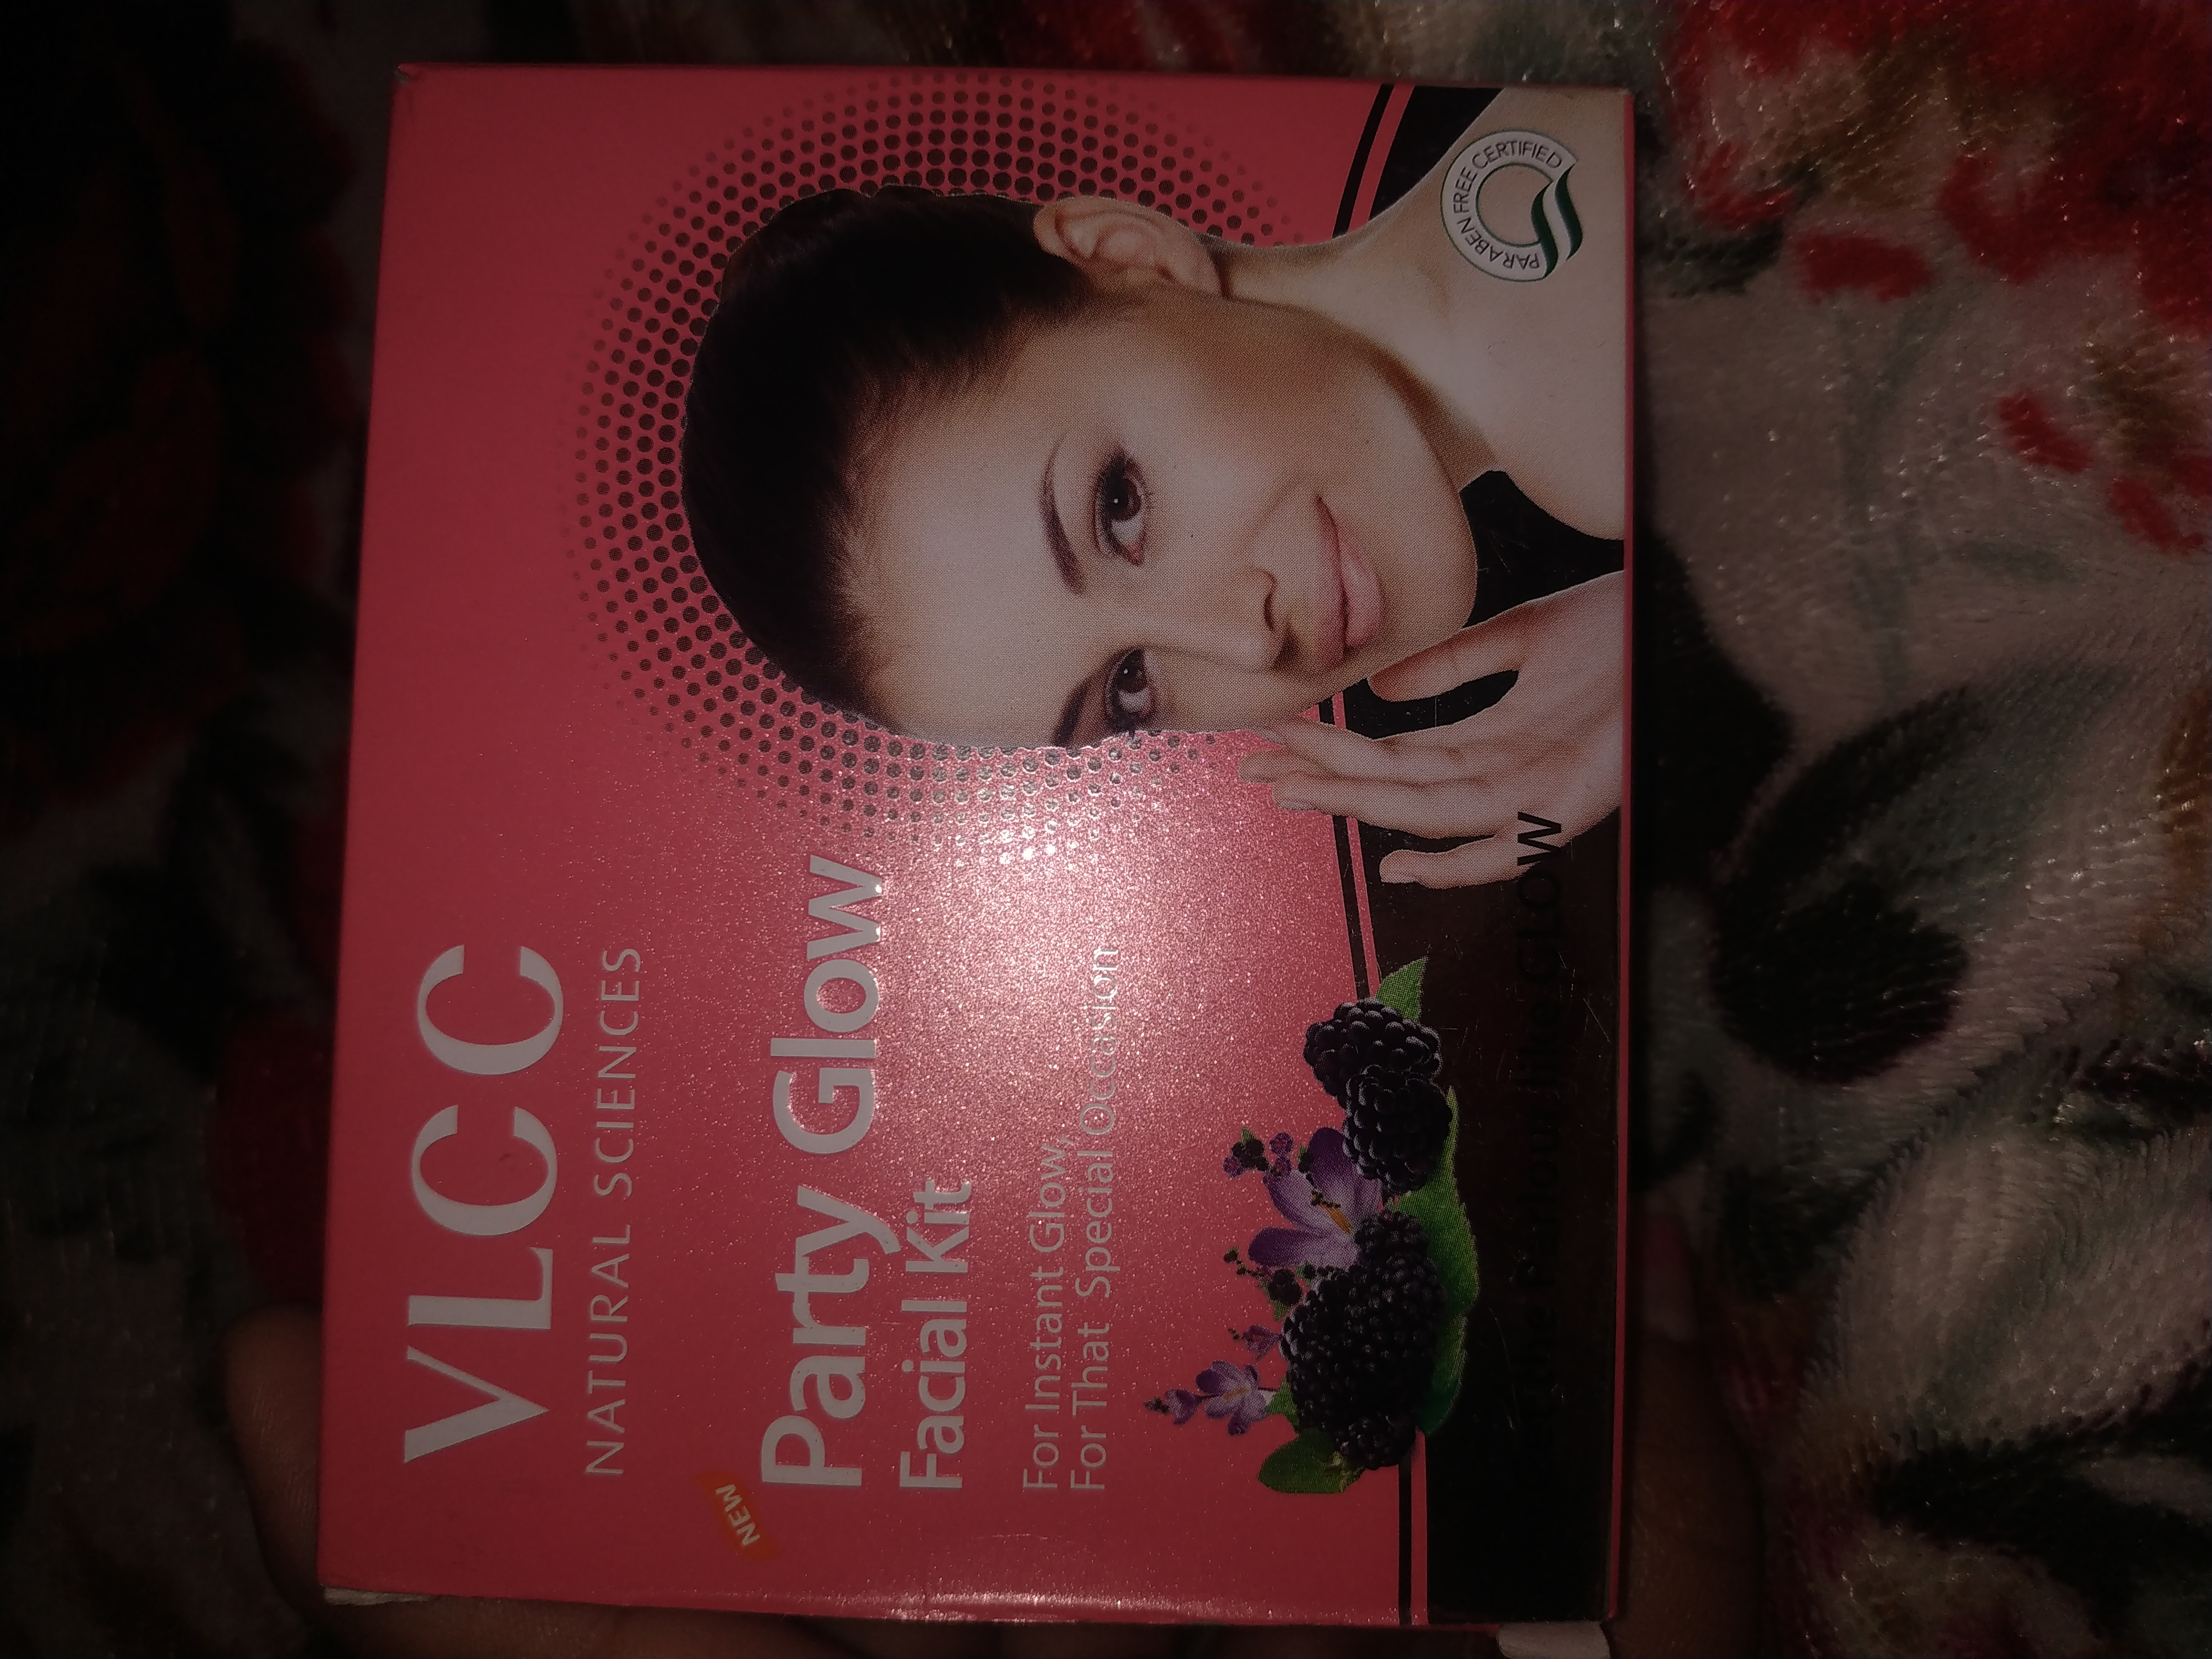 fab-review-Vlcc fruit facial kit – super handy-By saundary